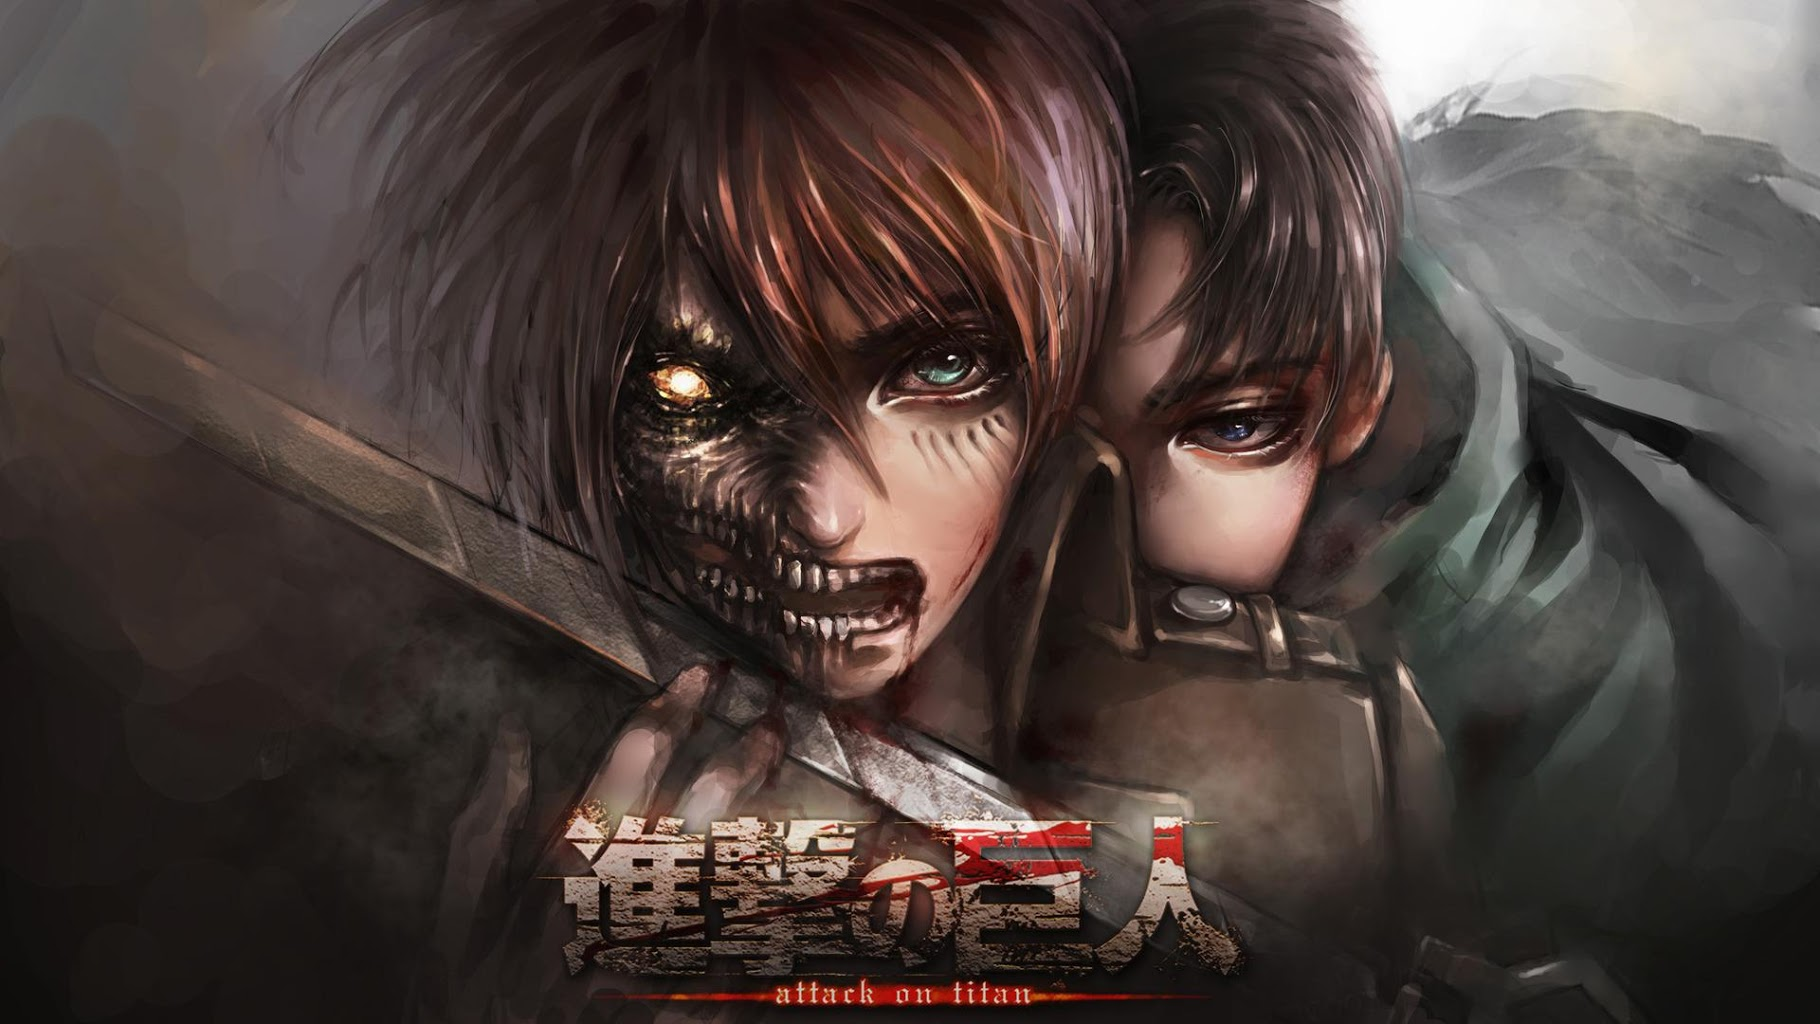 50 Attack On Titan Logo Wallpaper On Wallpapersafari